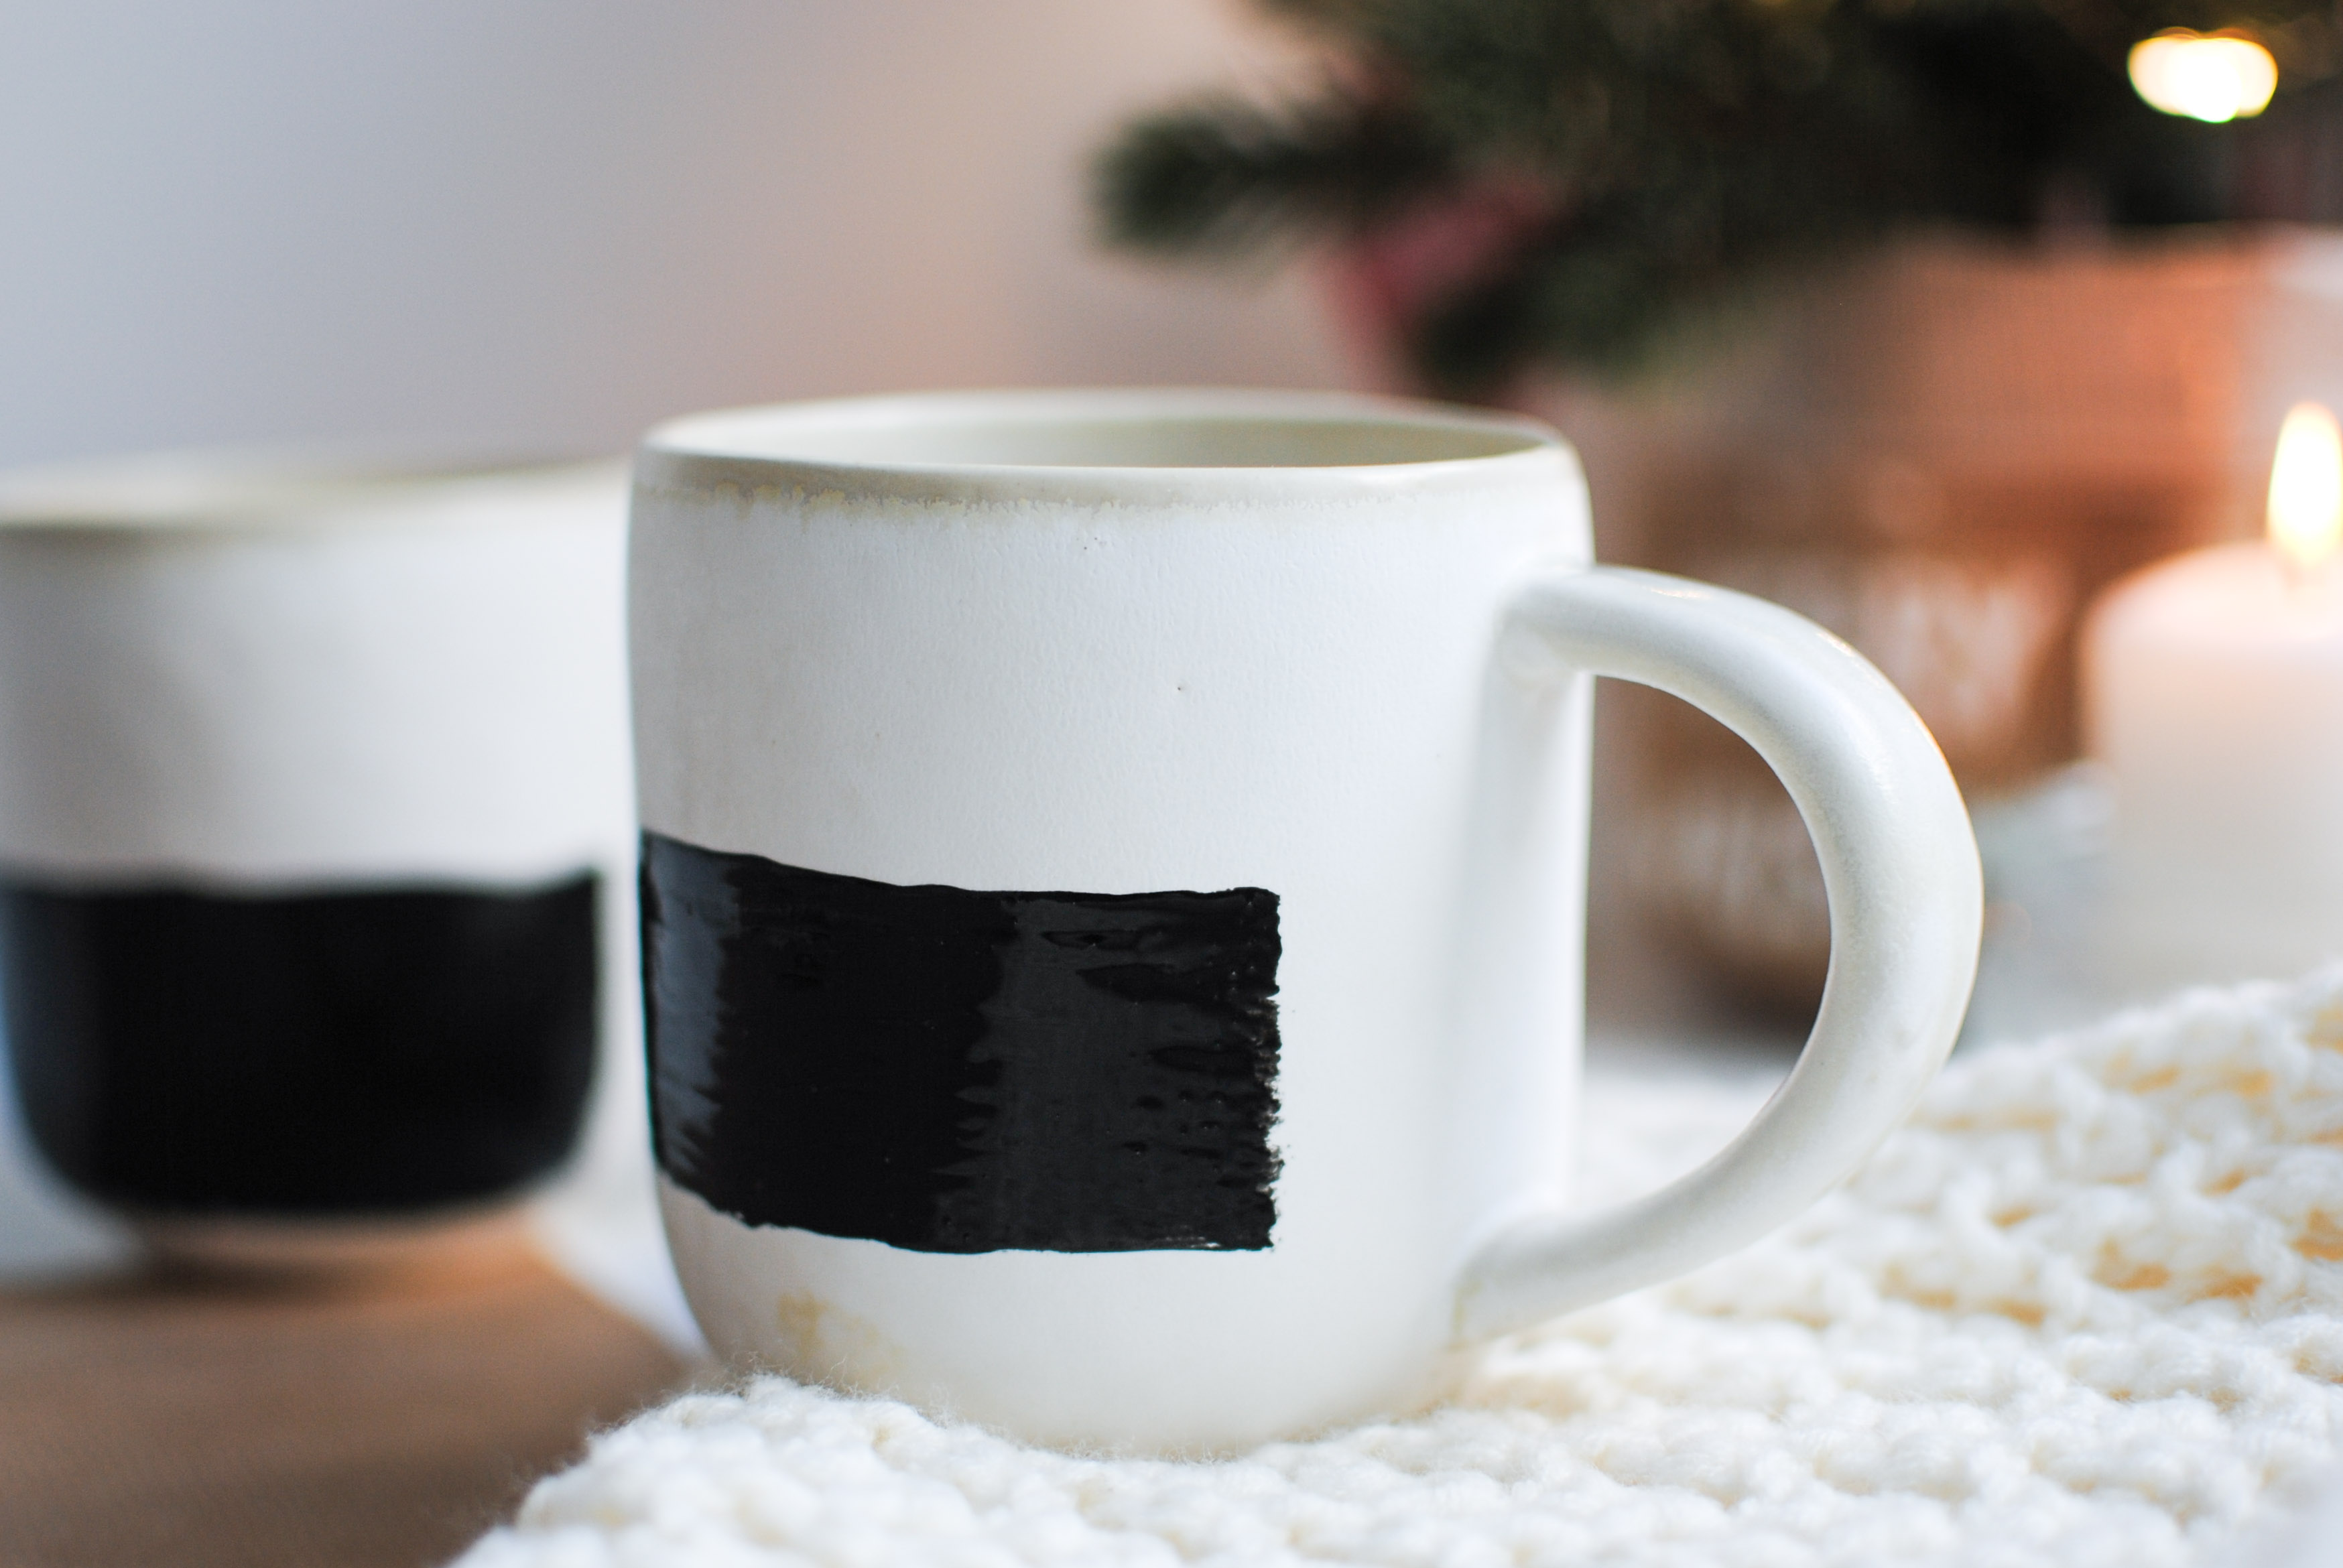 chalkboard mugs diy | please consider | joana limao